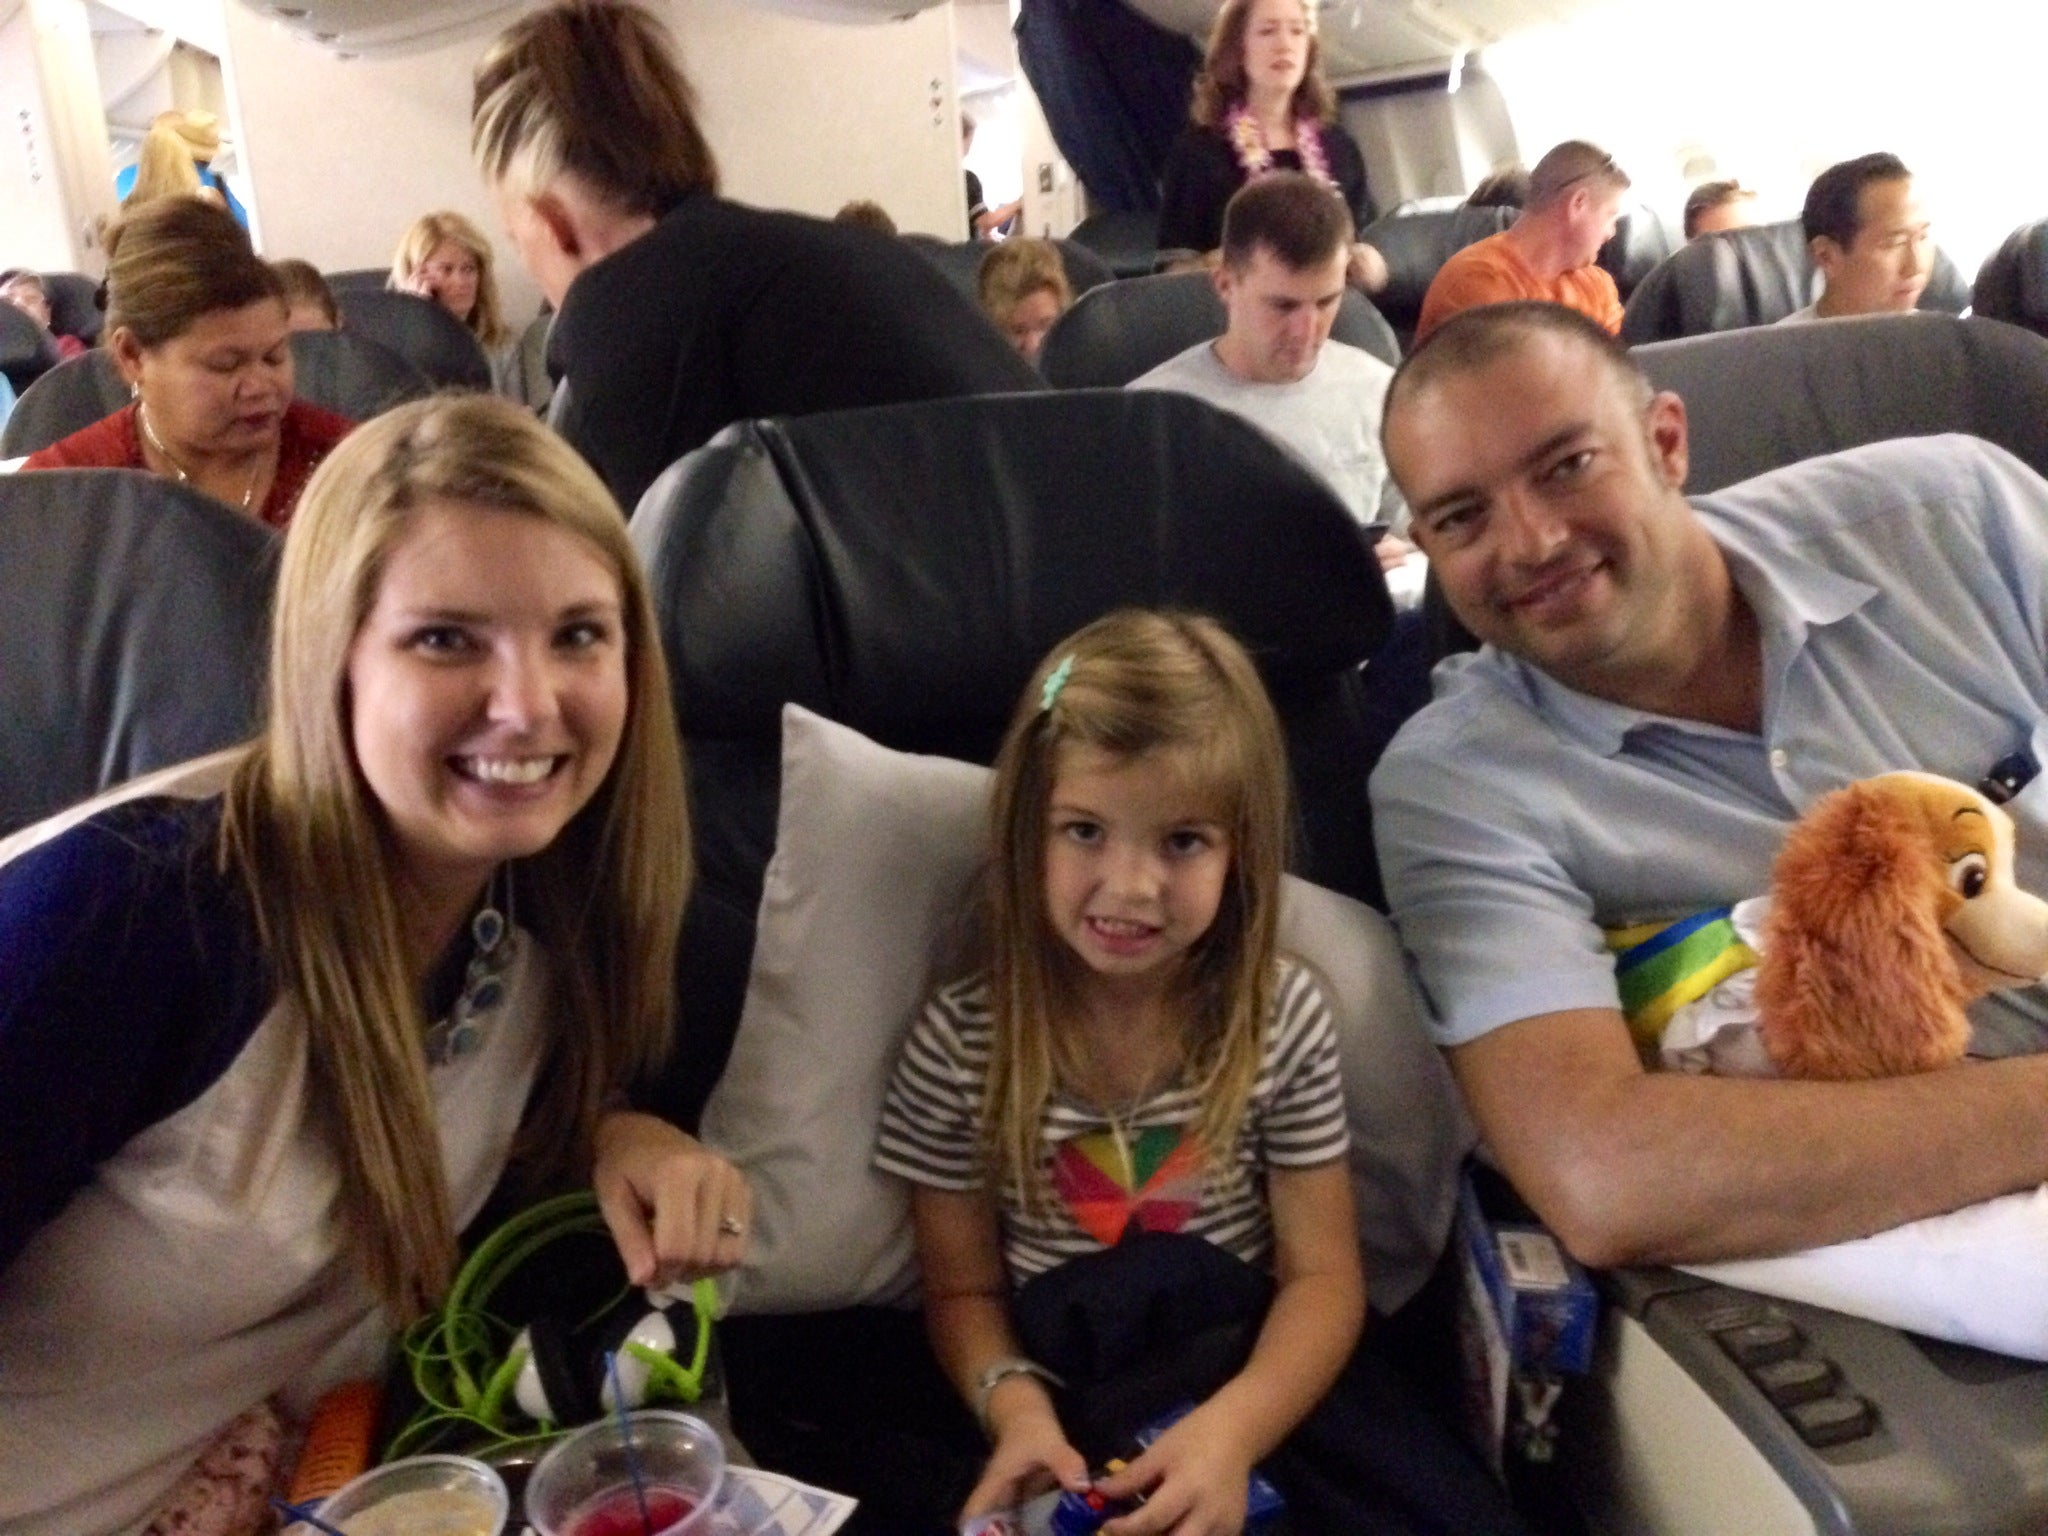 All together in business class on the way to Hawaii